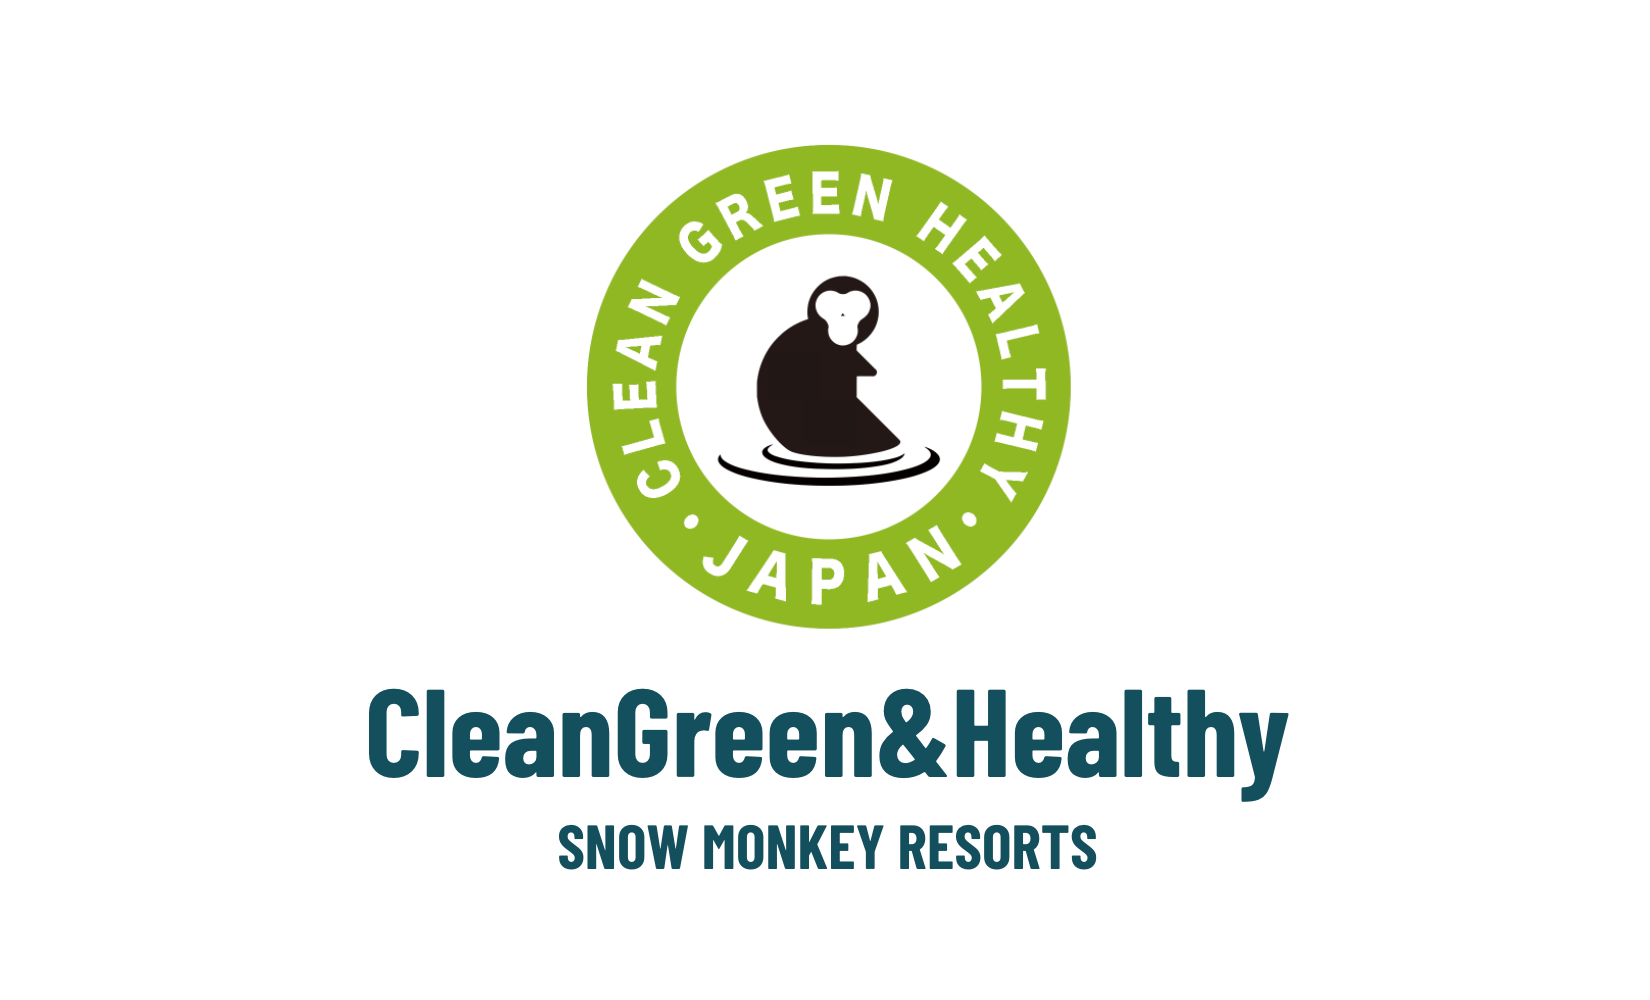 Travel Japan : Clean Green & Healthy